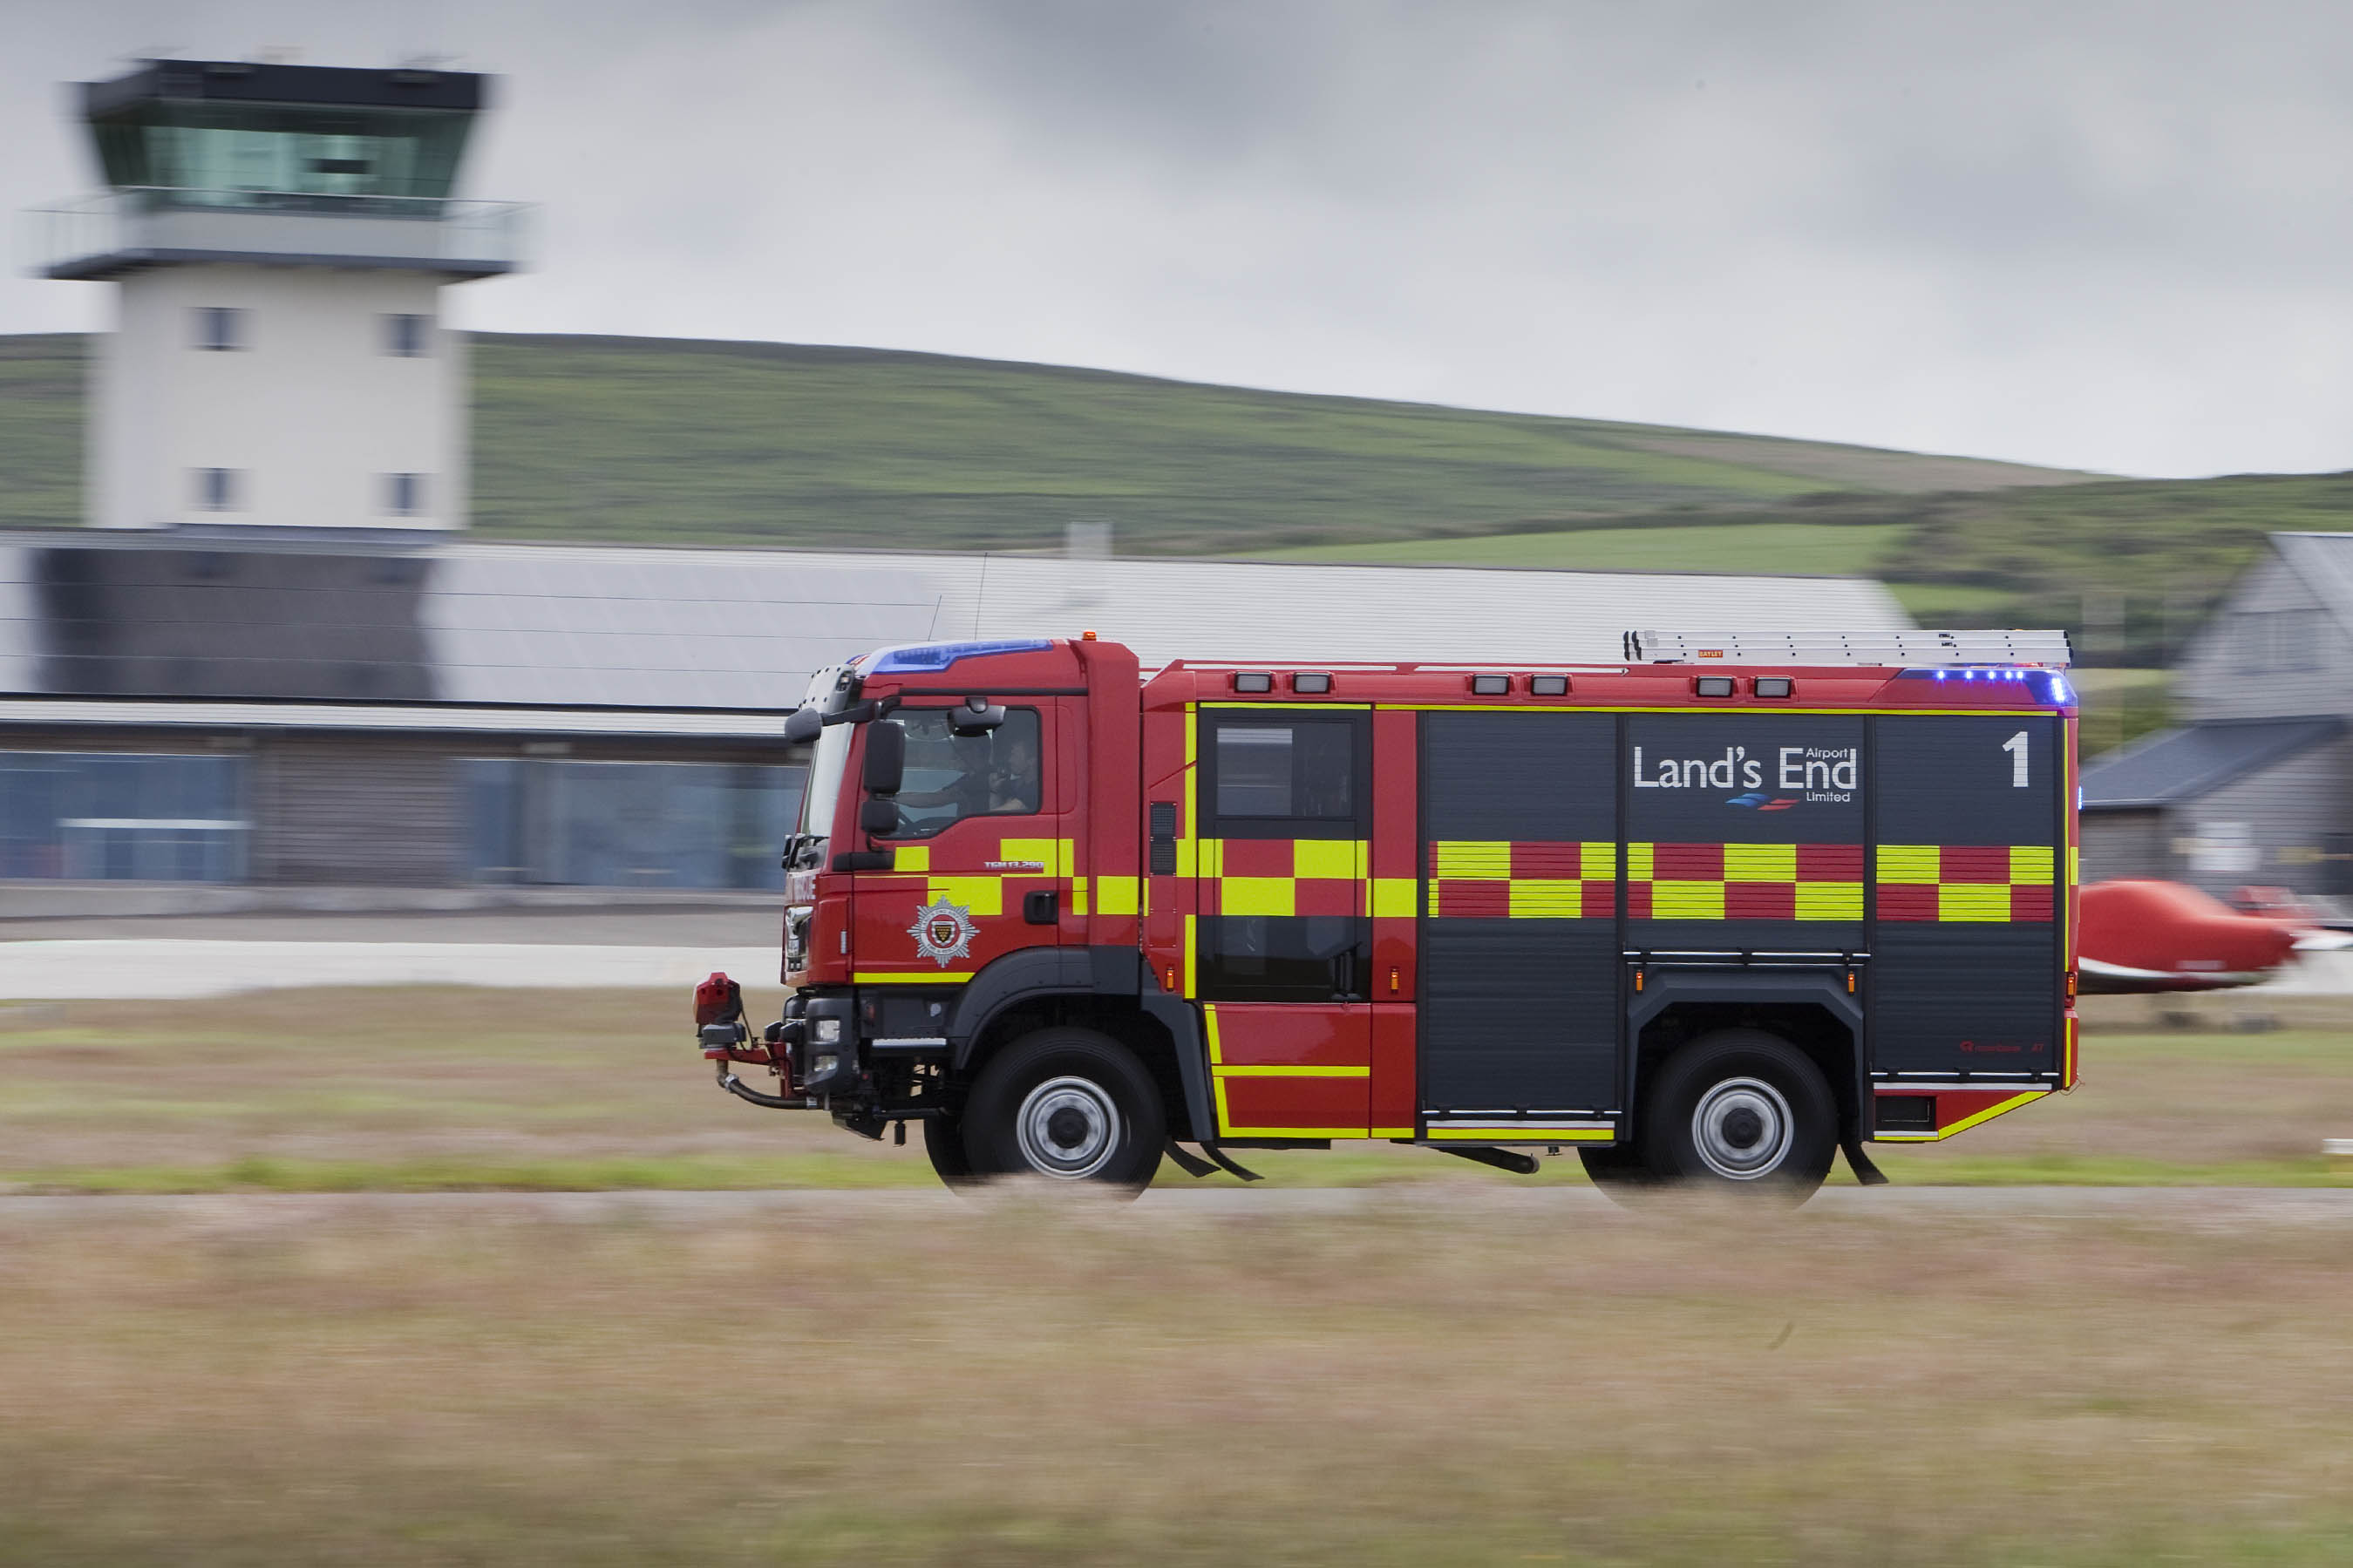 Land's End Airport have a new Rosenbauer AT (Advanced Technology) appliance, pictured showing its turn of speed during an excercise.